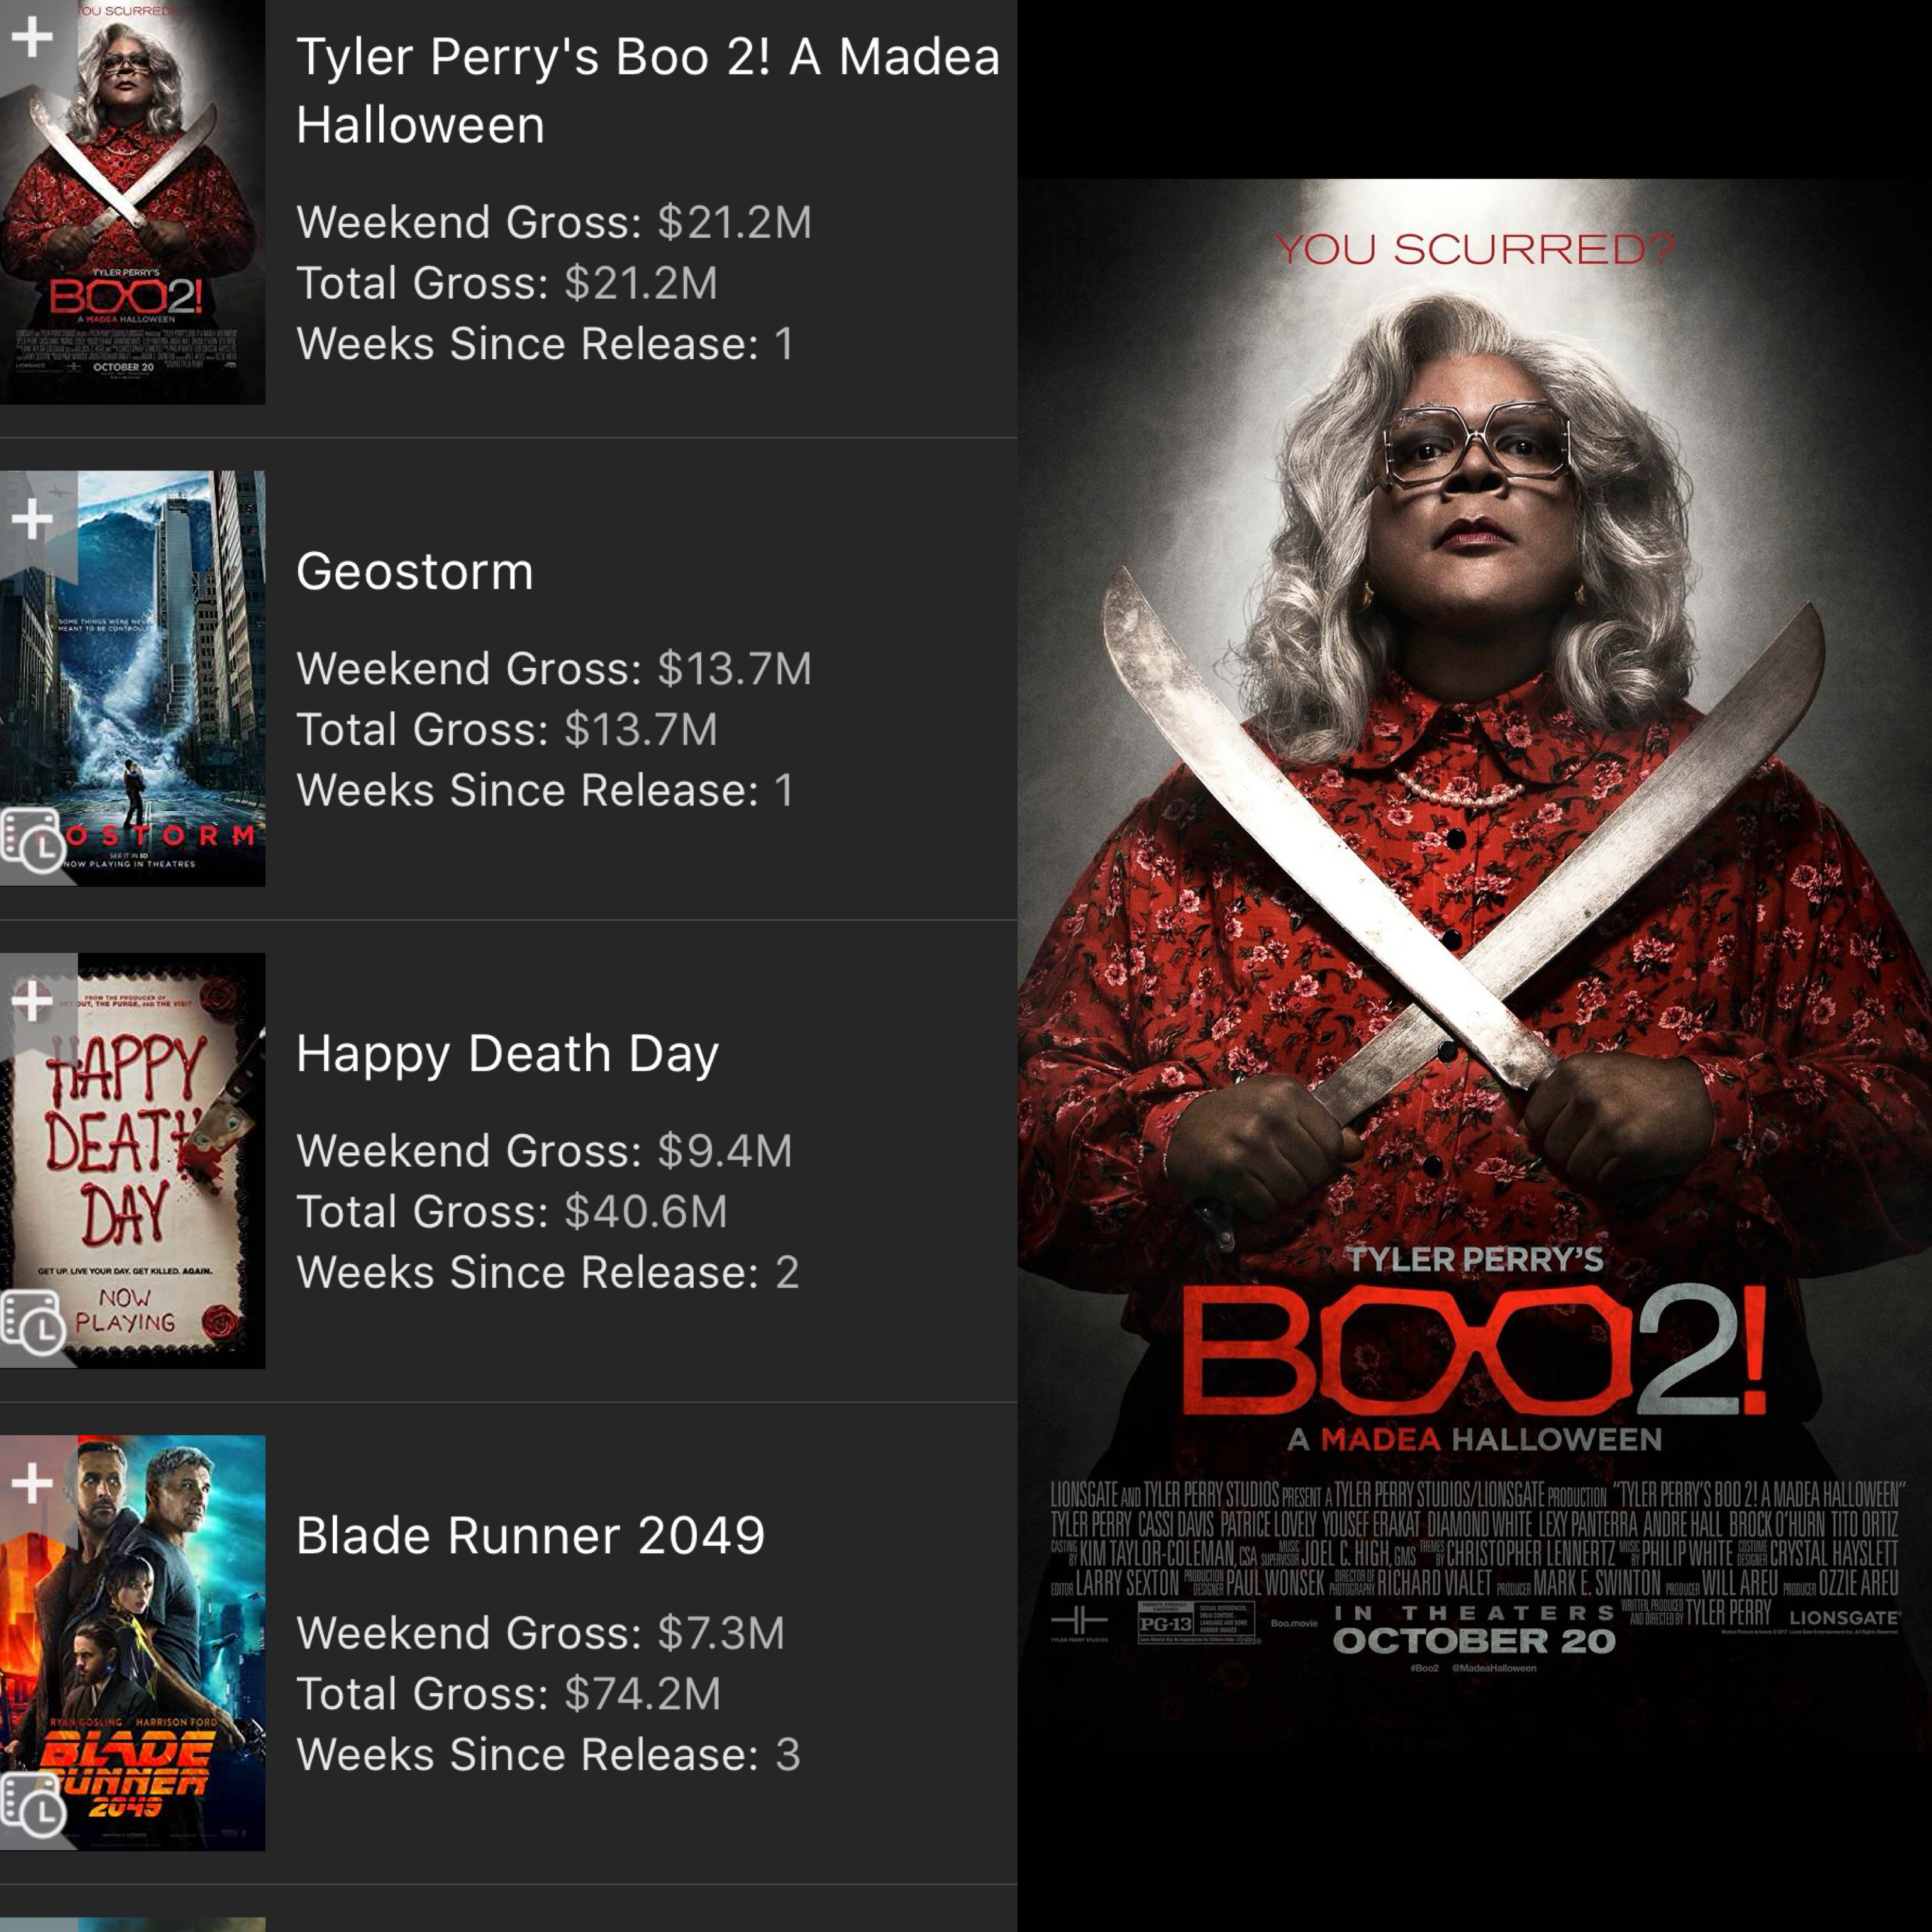 Tyler Perry's Boo 2! A Madea Halloween is the 1 Movie in